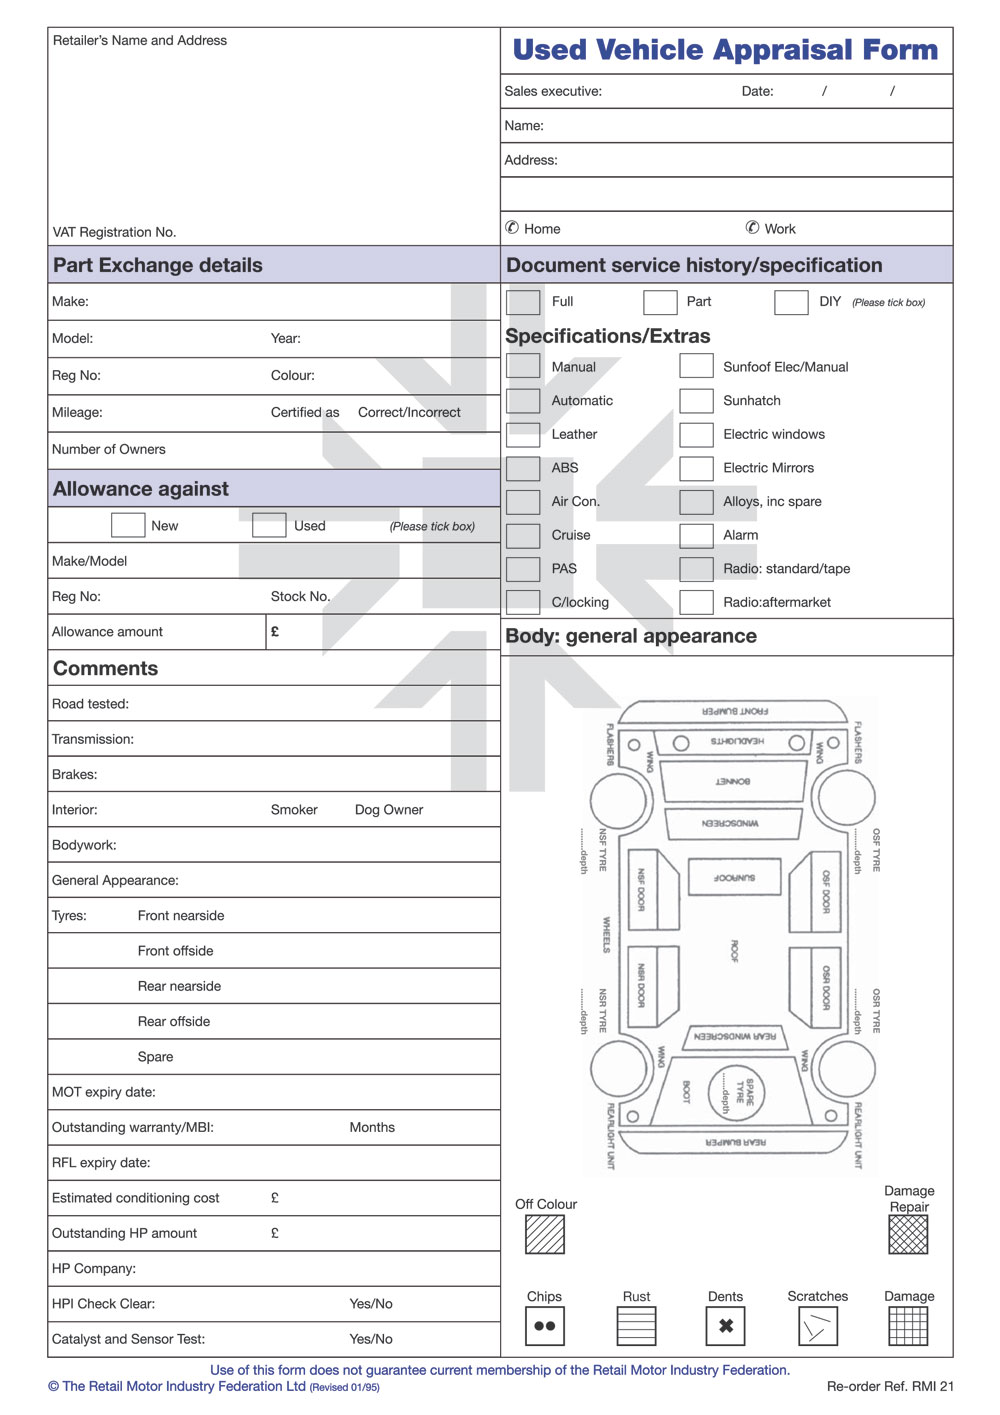 RMI021   Used Vehicle Appraisal Form Pad   RMI Webshop